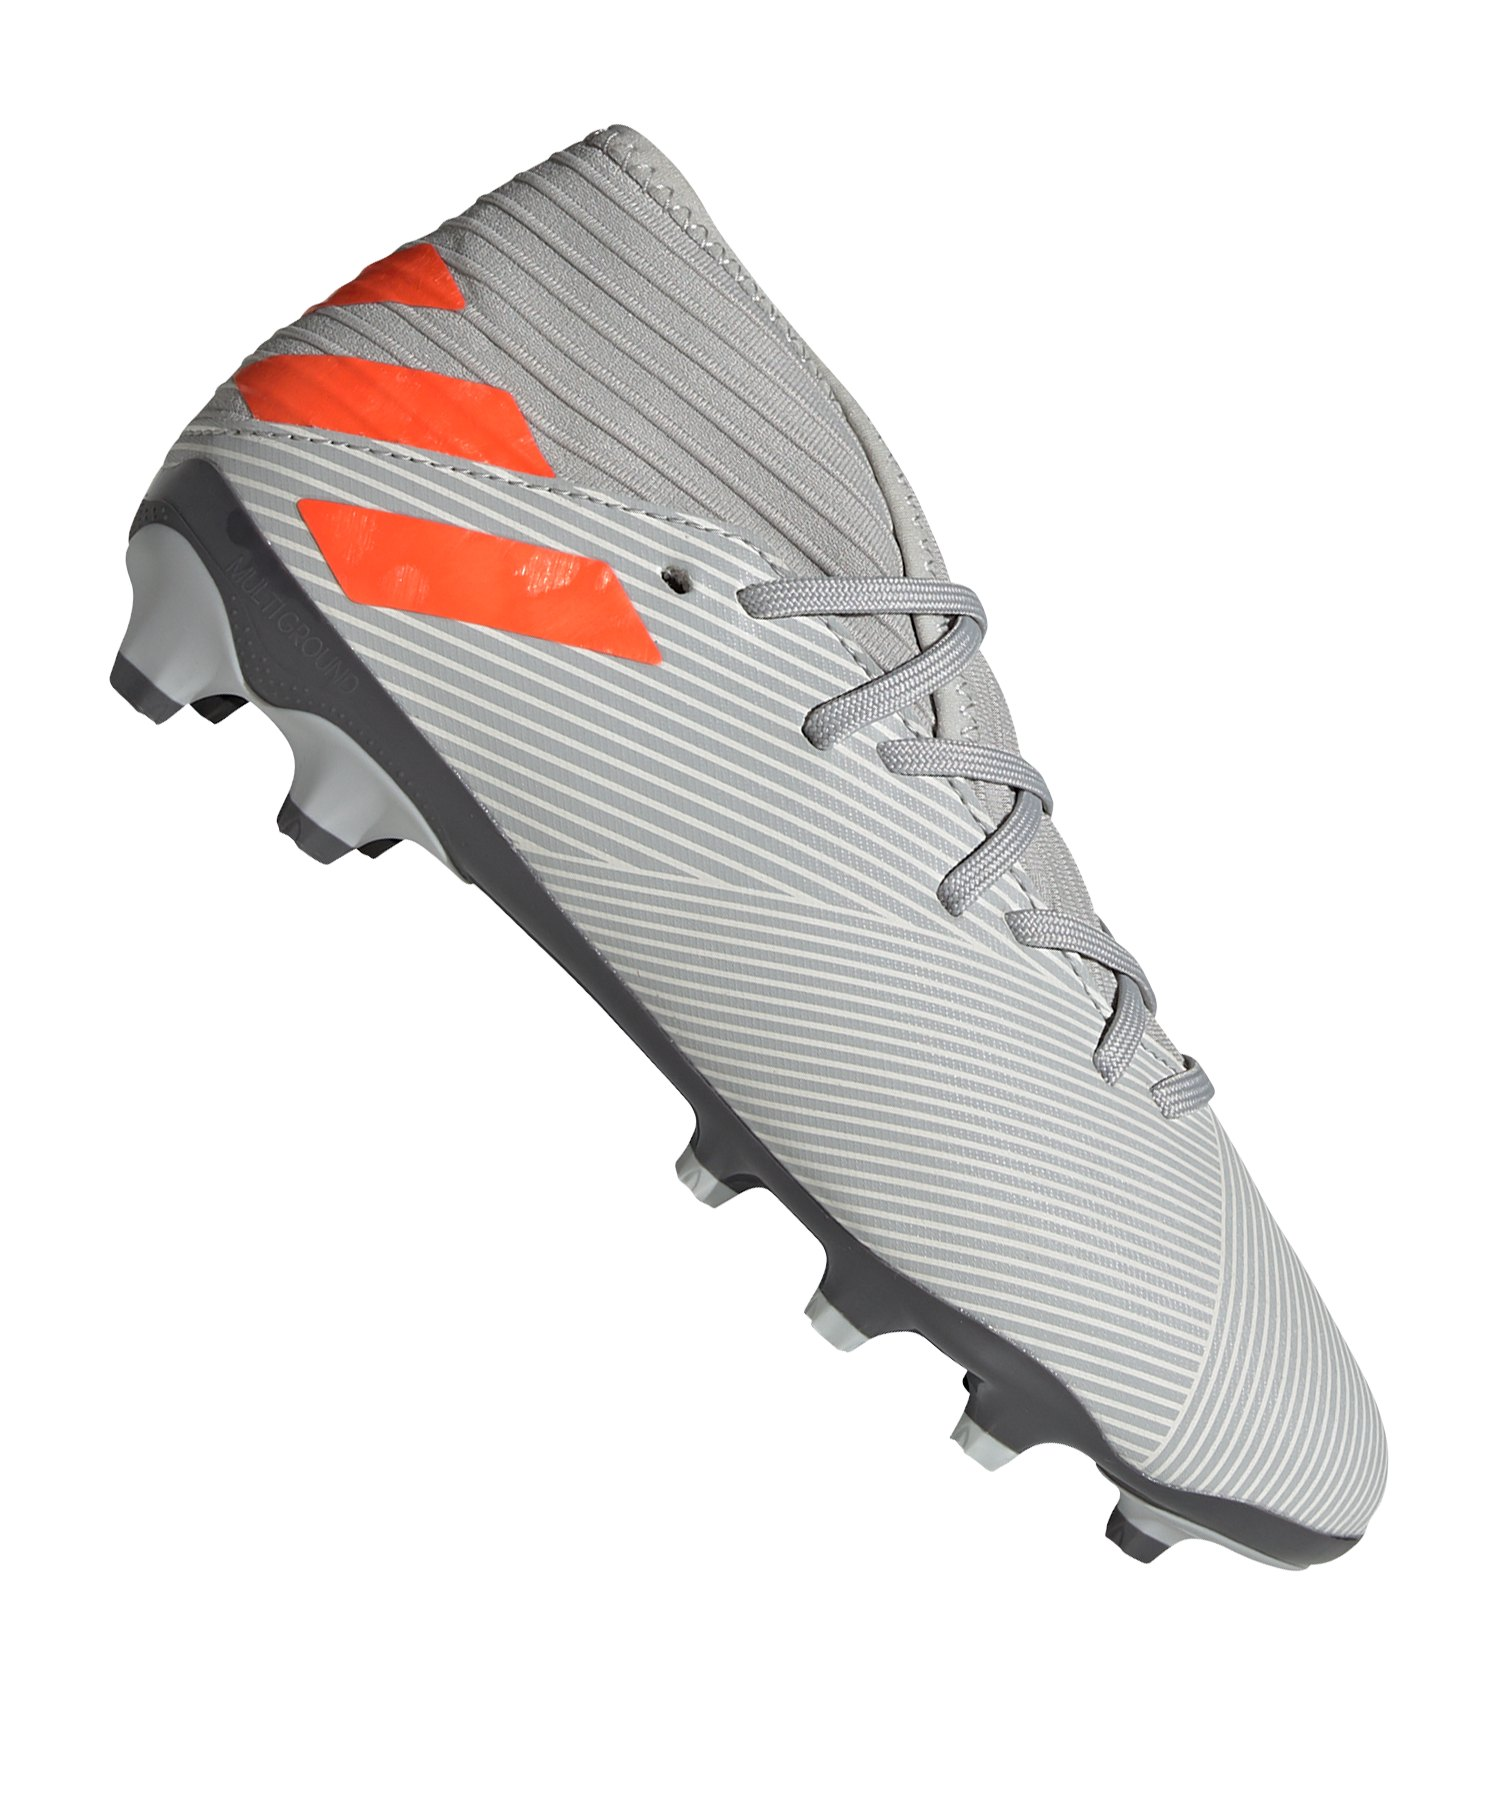 adidas NEMEZIZ 19.3 MG Kids Grau Orange - grau